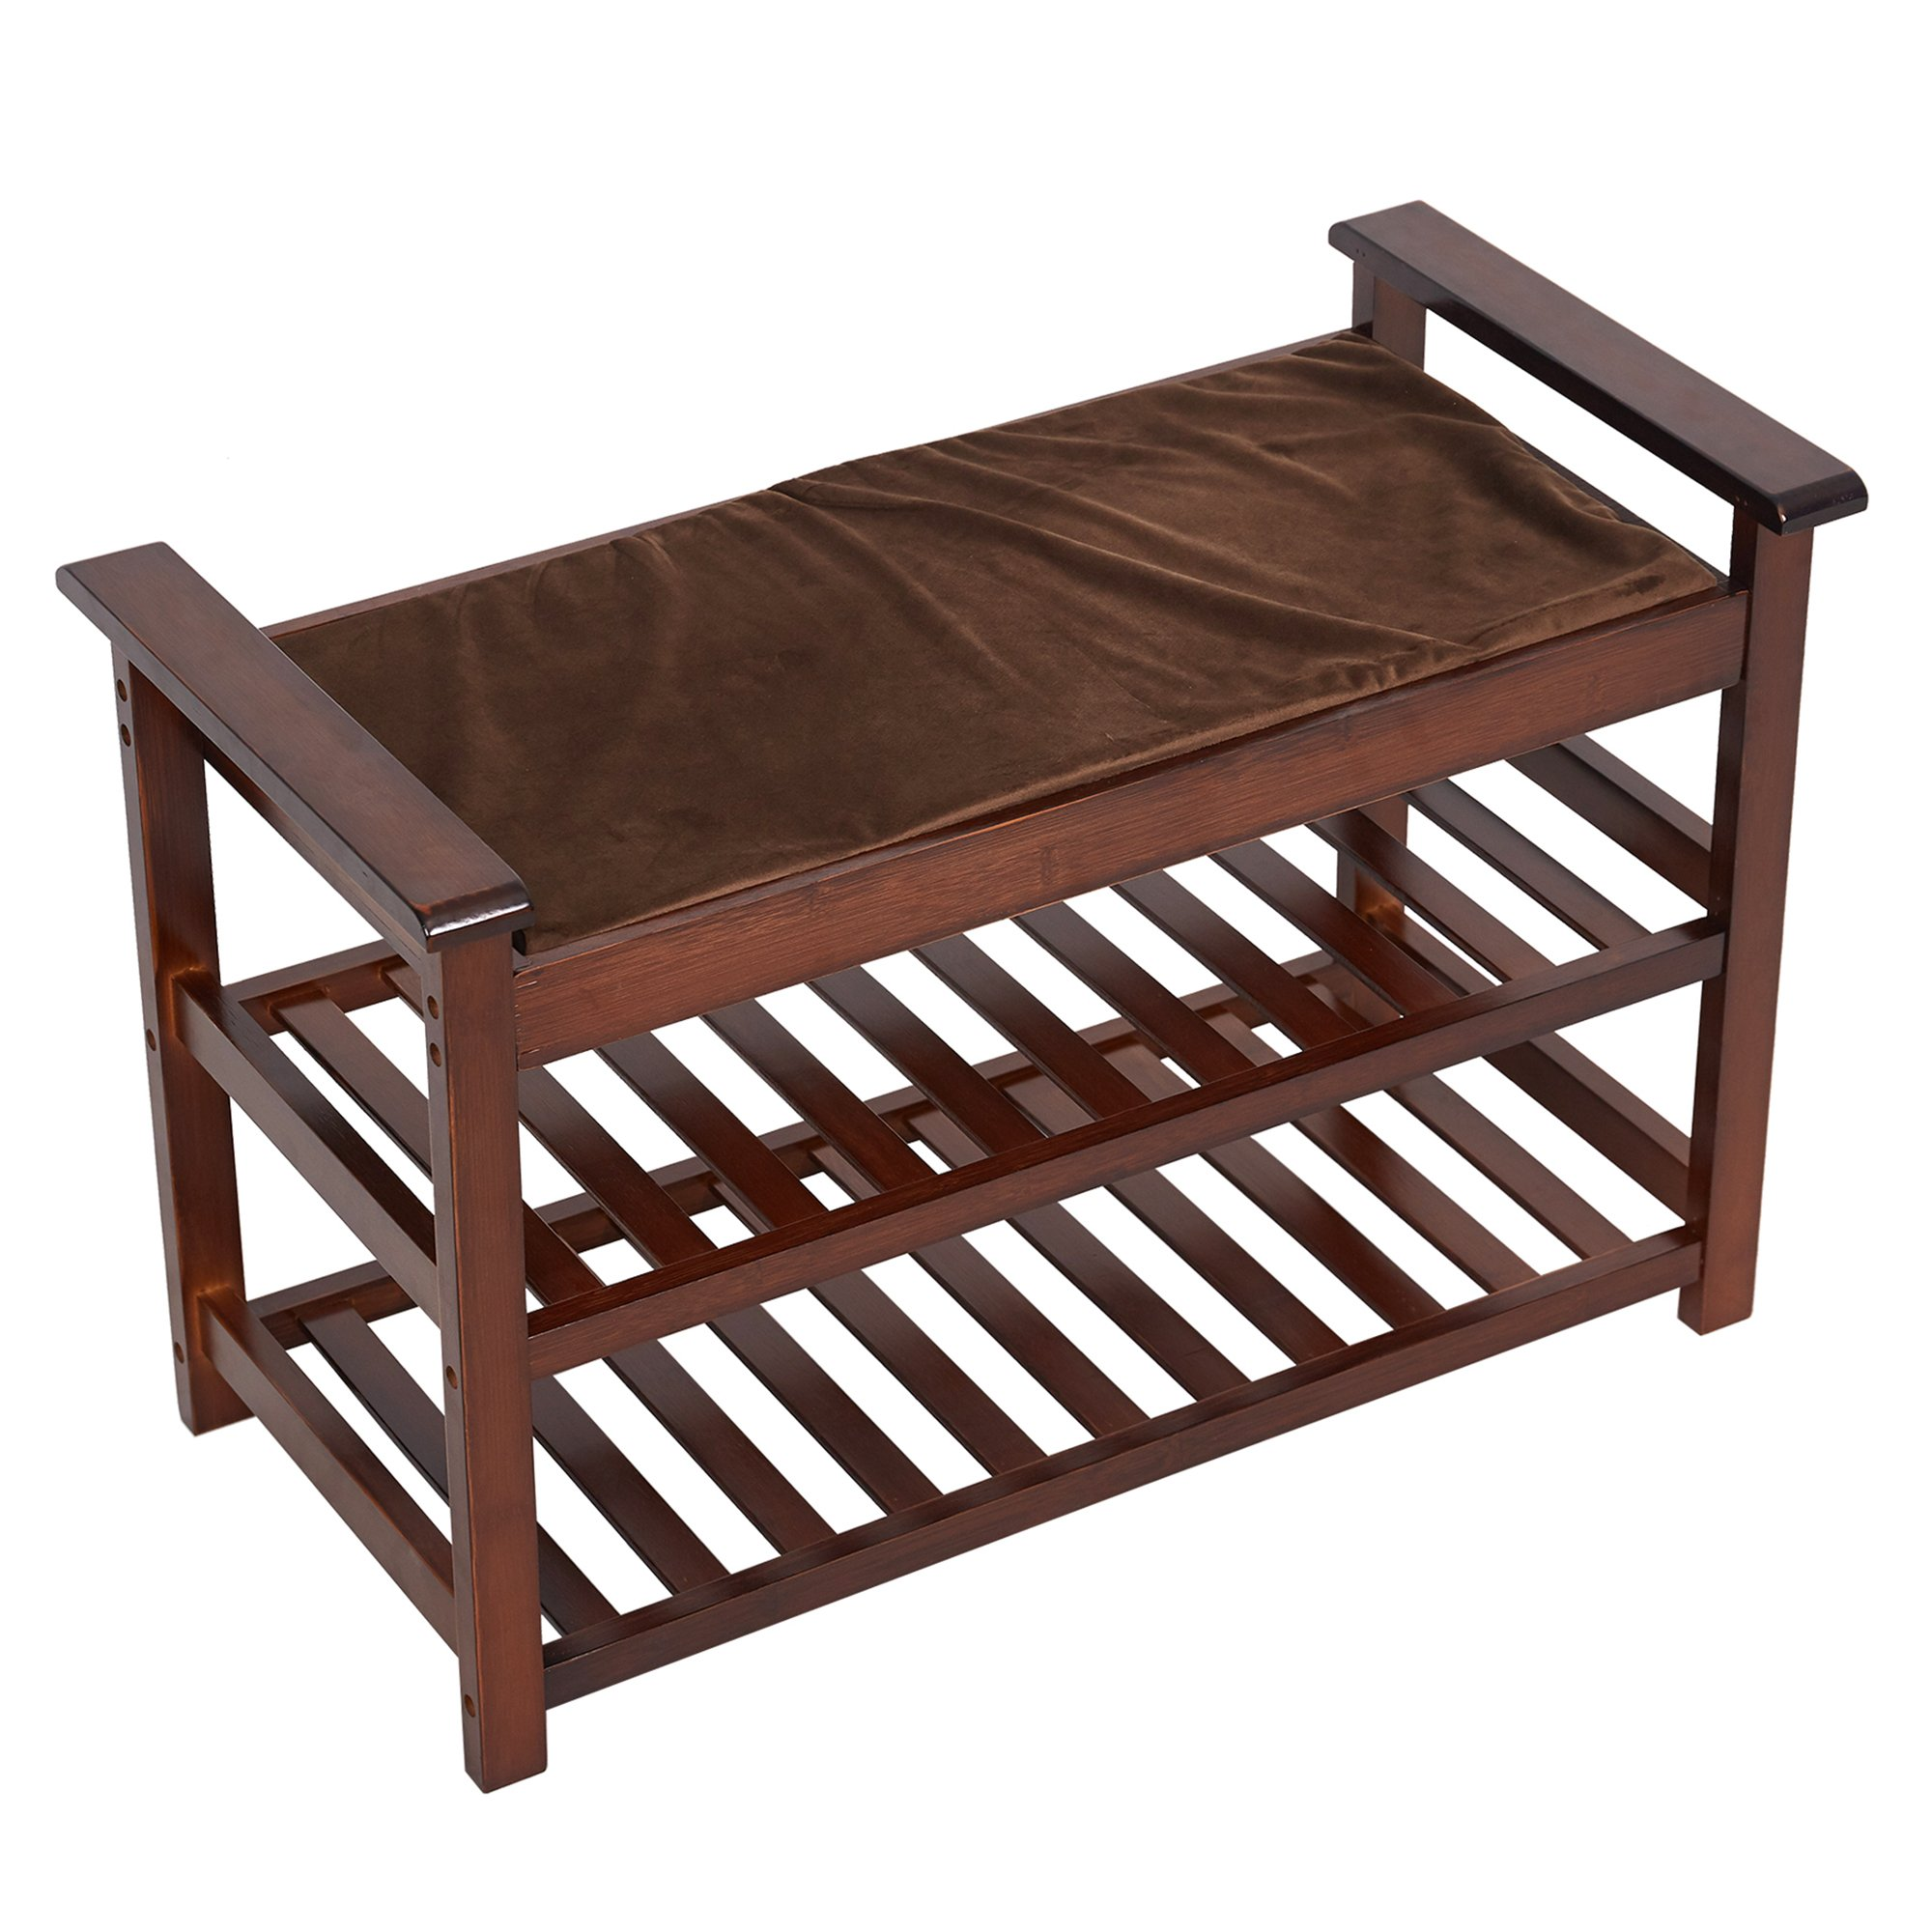 Lucky Tree Espresso Upholstered Bench with Padded Seat 2 Tiers Bamboo Storage Rack Standing Shoe organizer Shelf with Cushion for Entryway Bedroom Mud Room